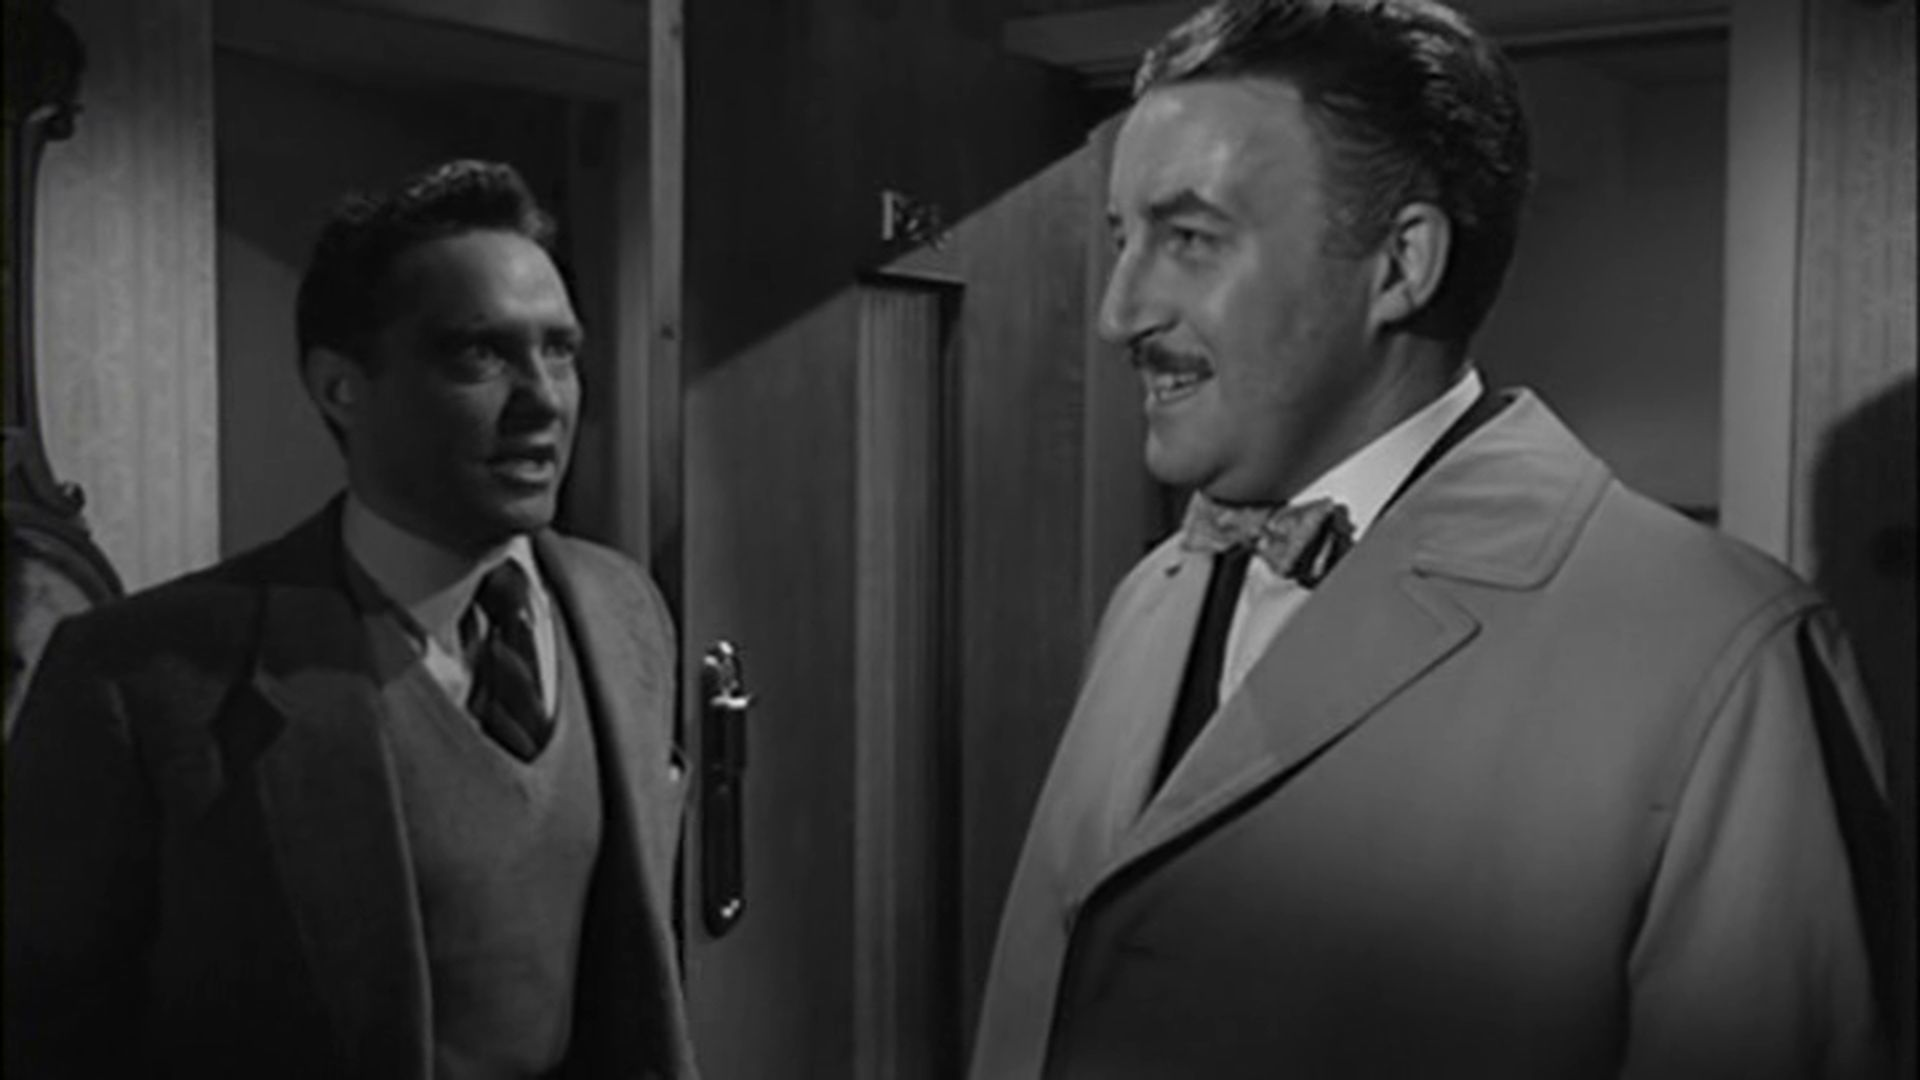 Peter Sellers and Richard Todd in Never Let Go (1960)